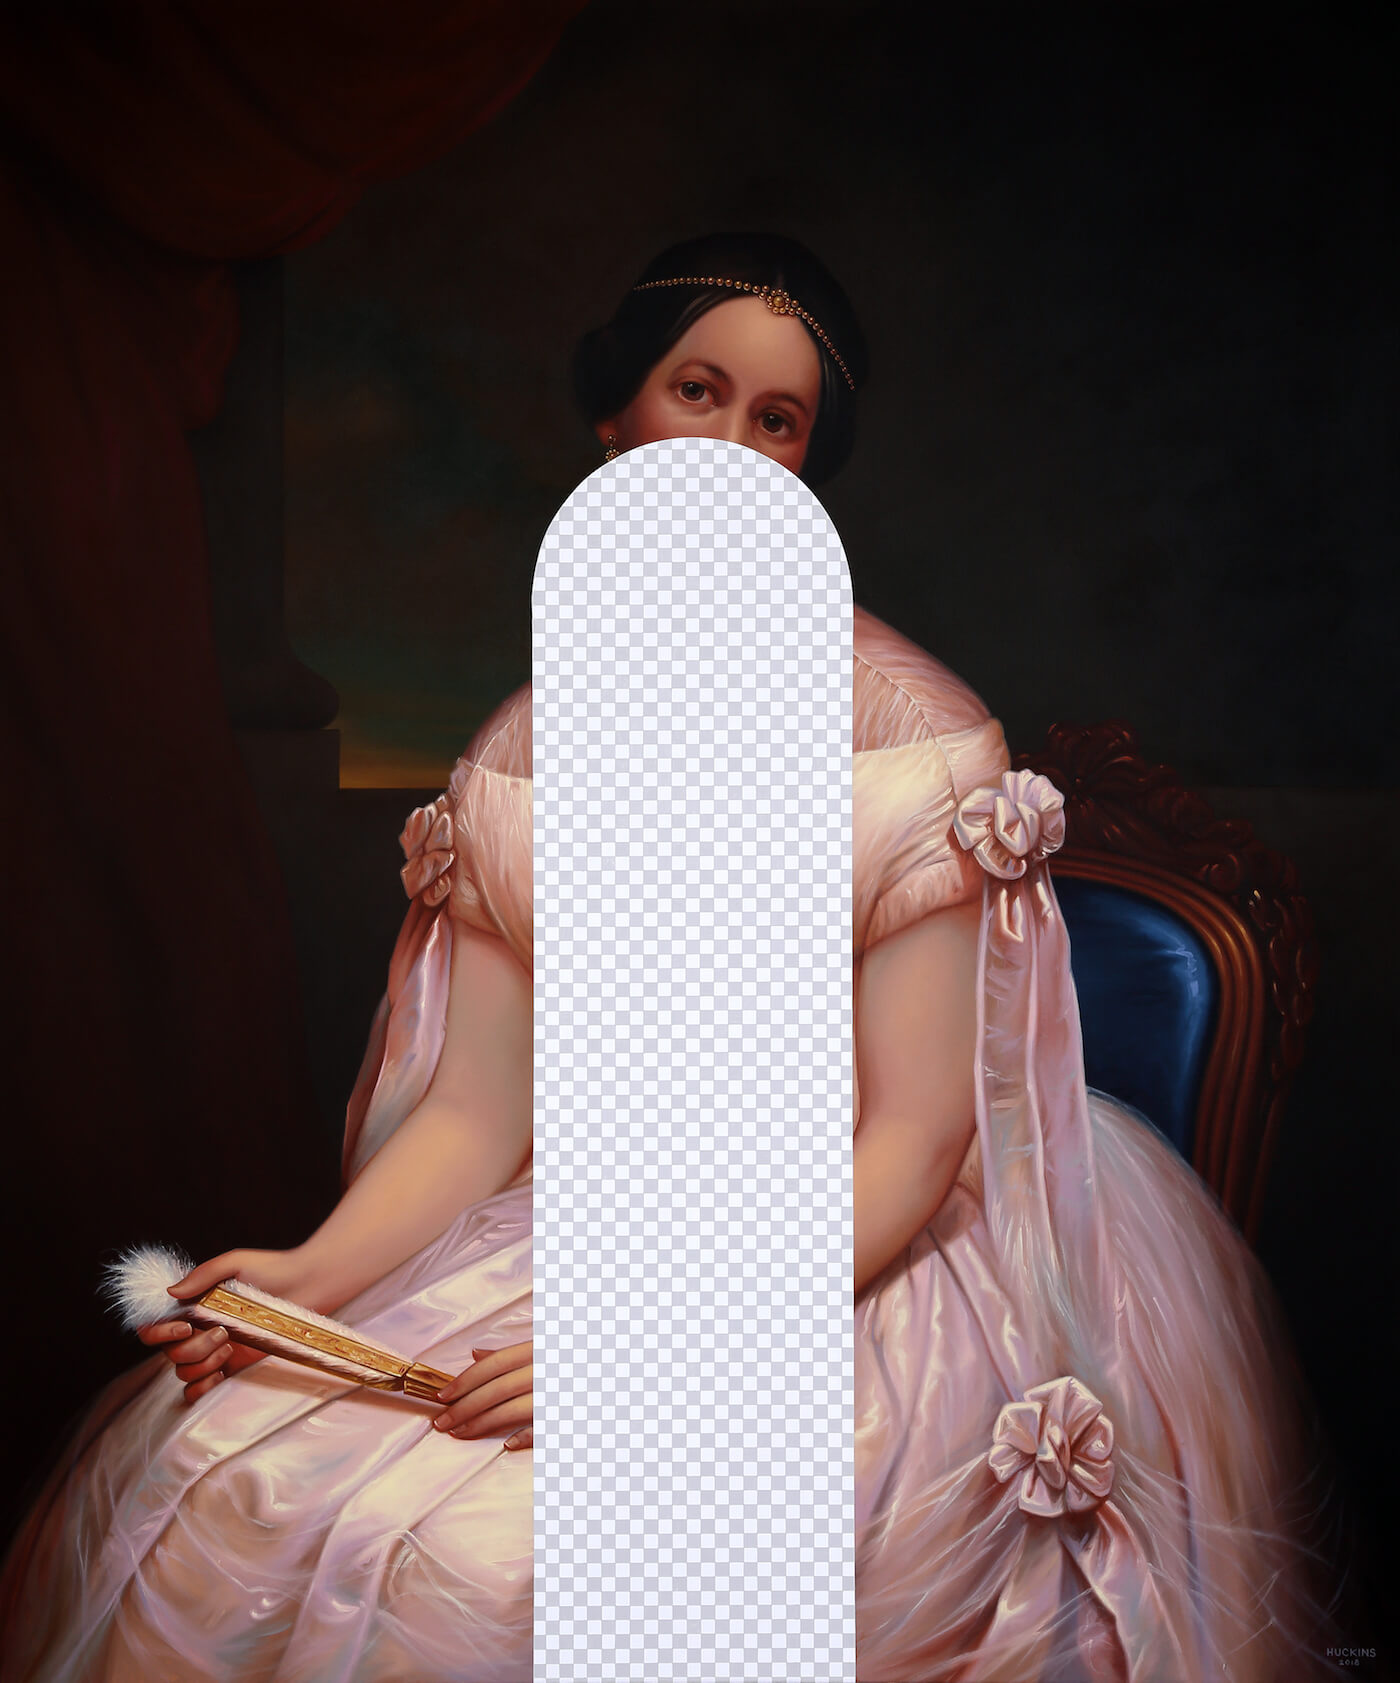 obra shawn huckins